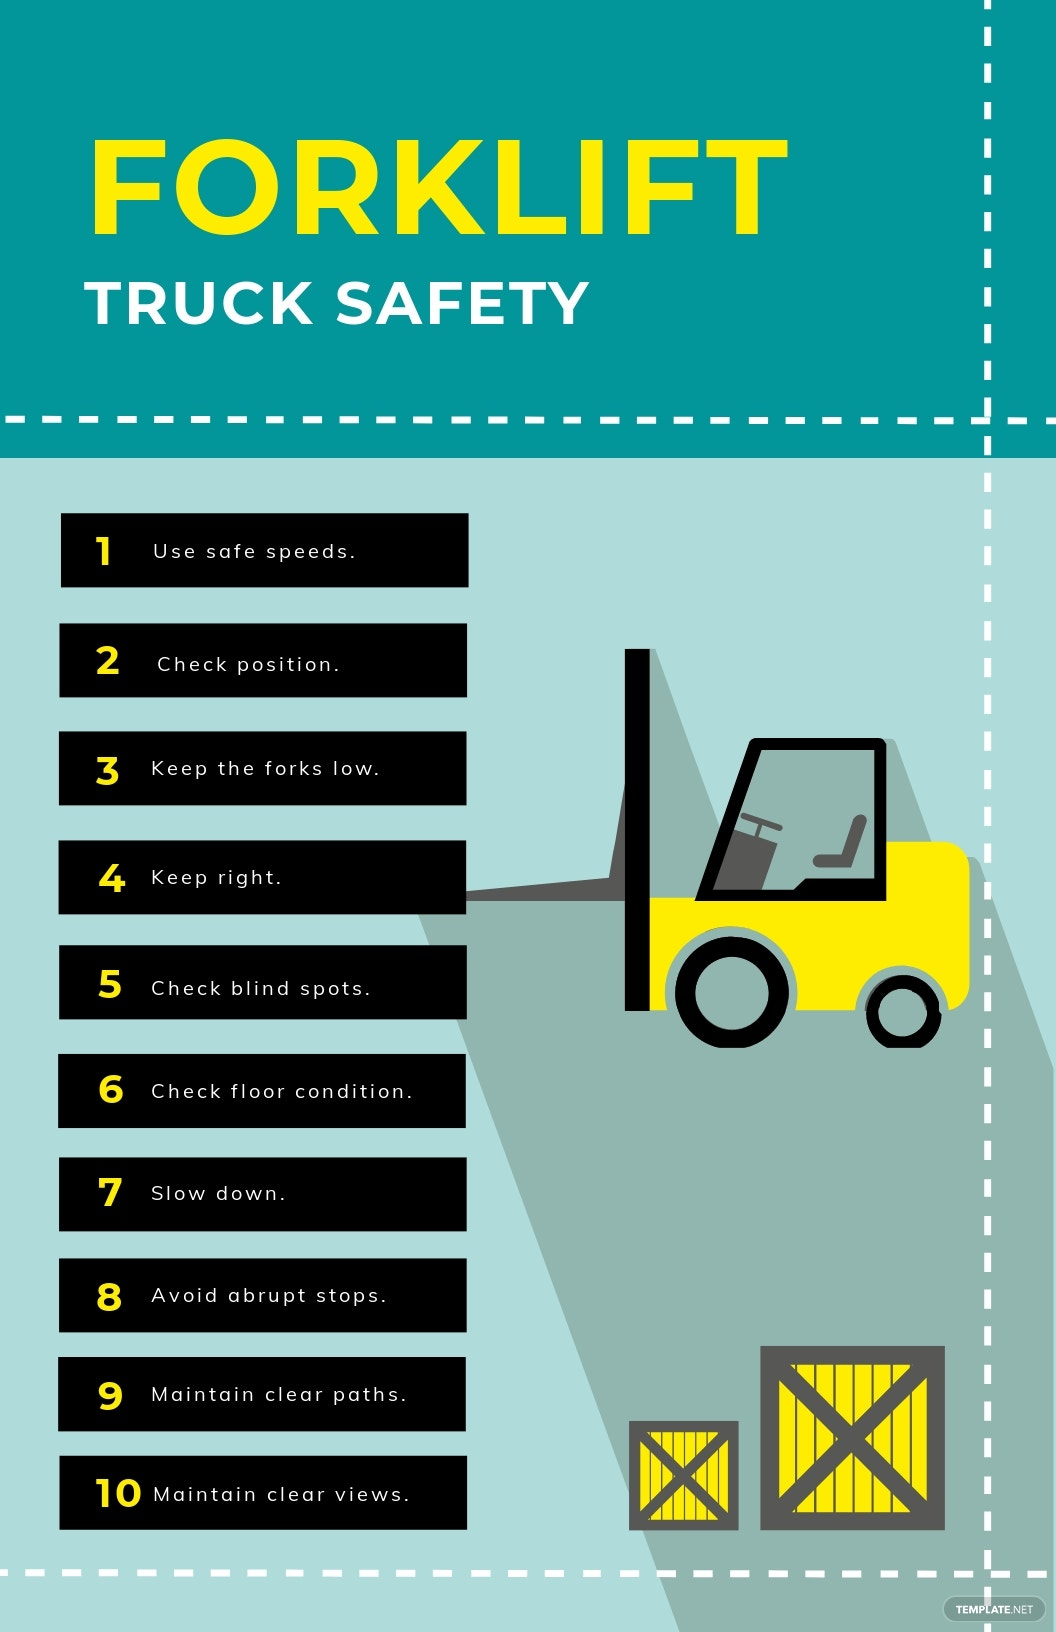 Forklift Truck Safety Poster Template